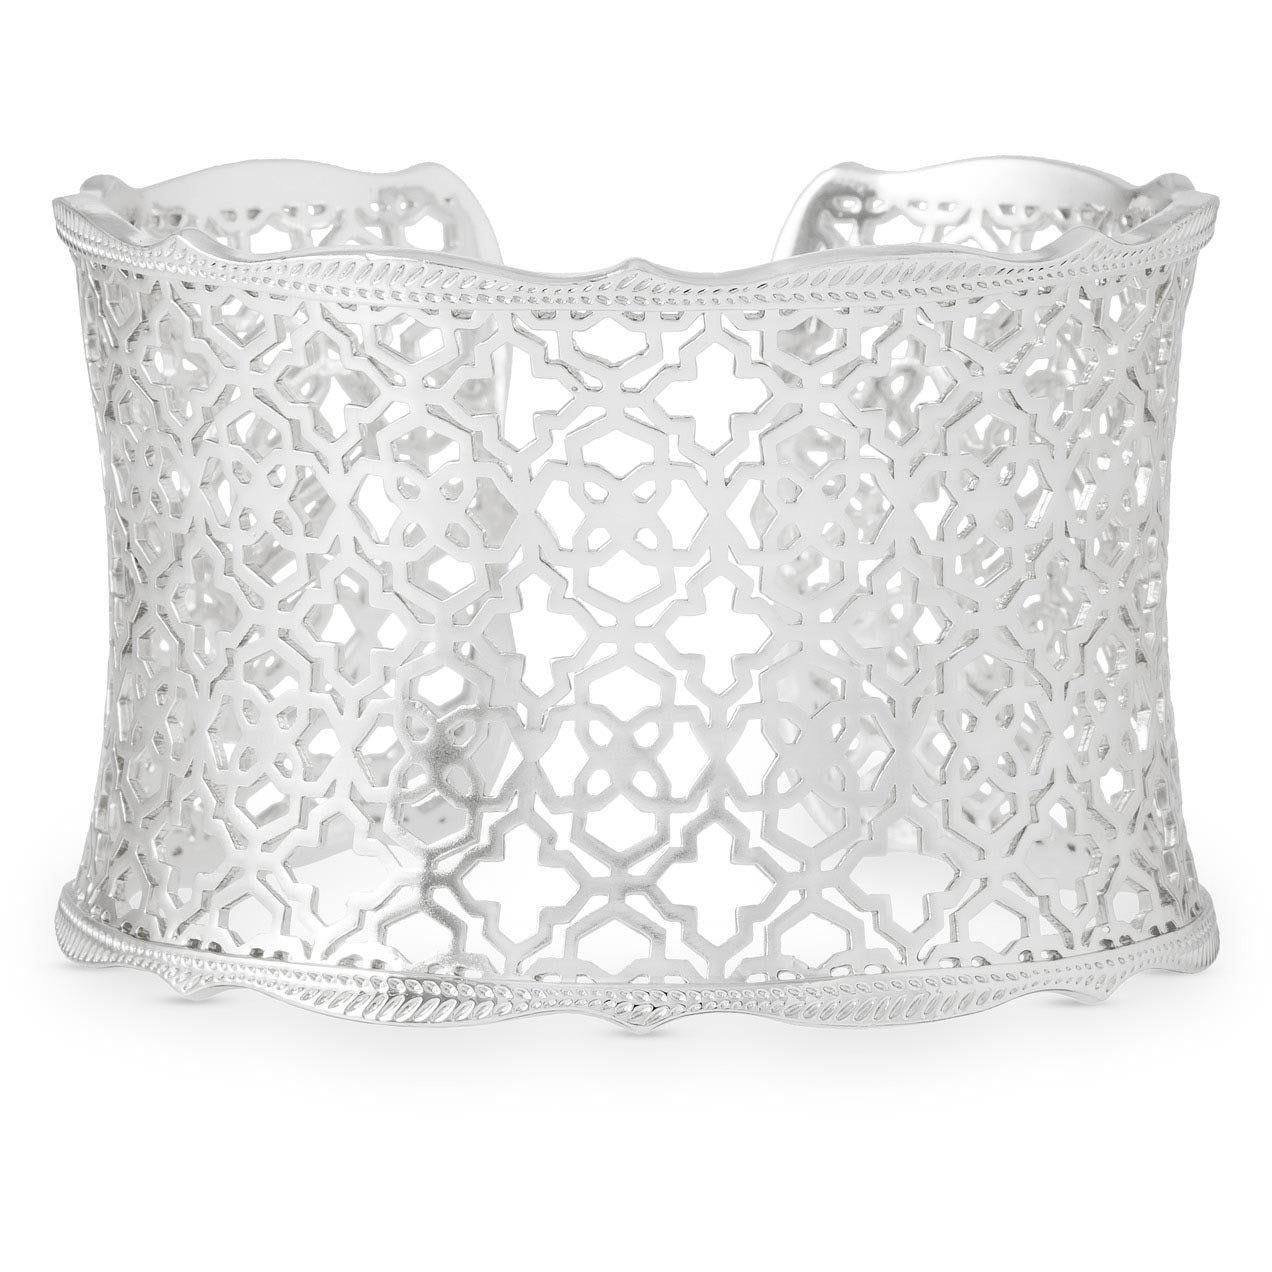 Kendra Scott -  Candice Silver Cuff Bracelet In Silver Filigree Mix